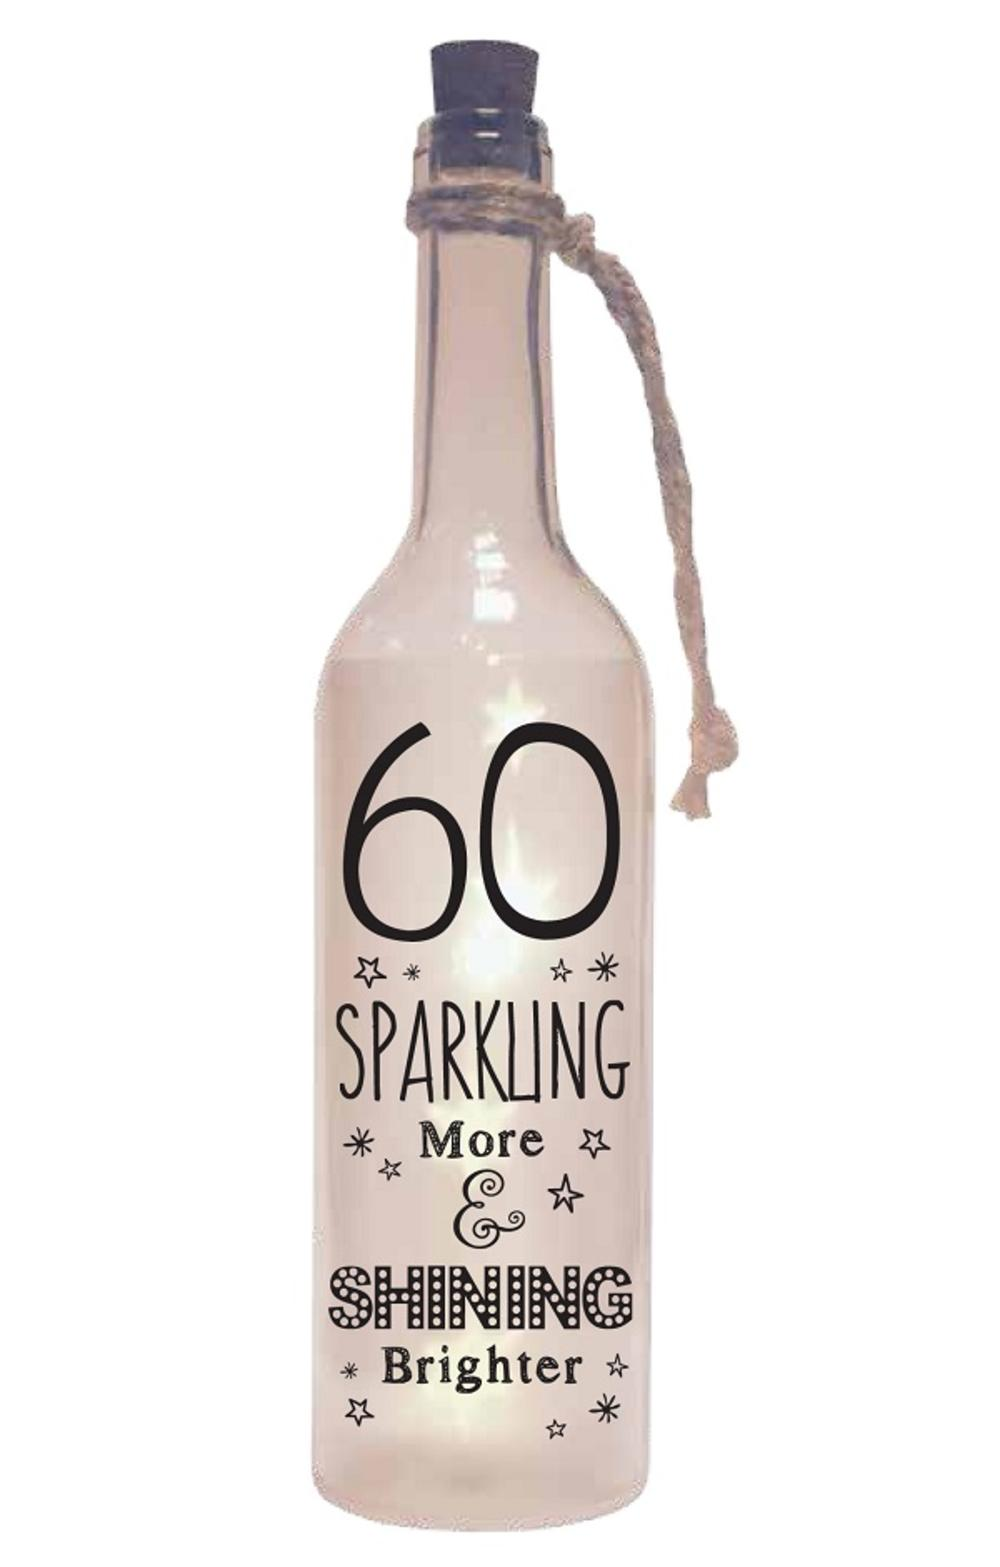 60th Birthday Starlight Bottle Light Up Sentimental Message Bottles